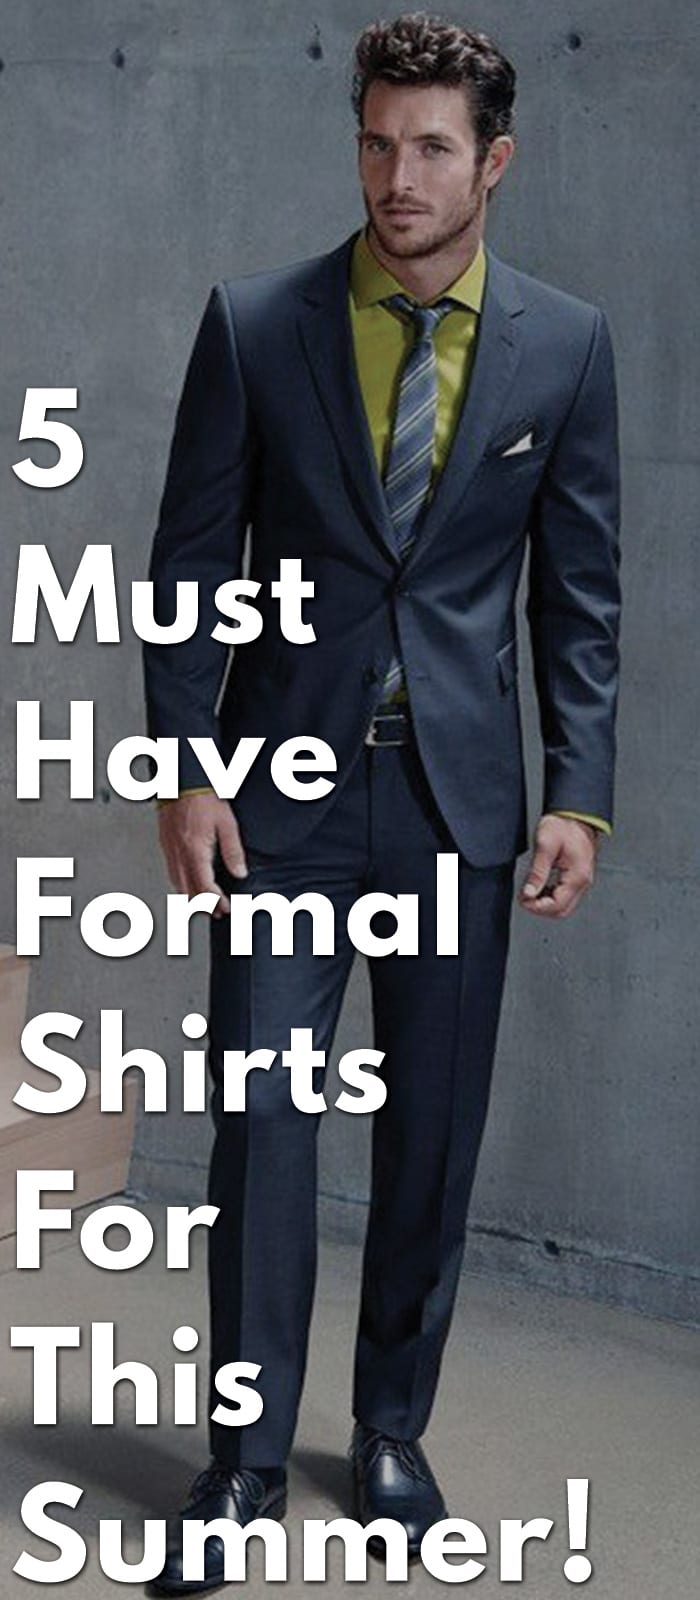 5-Must-Have-Formal-Shirts-For-This-Summer!